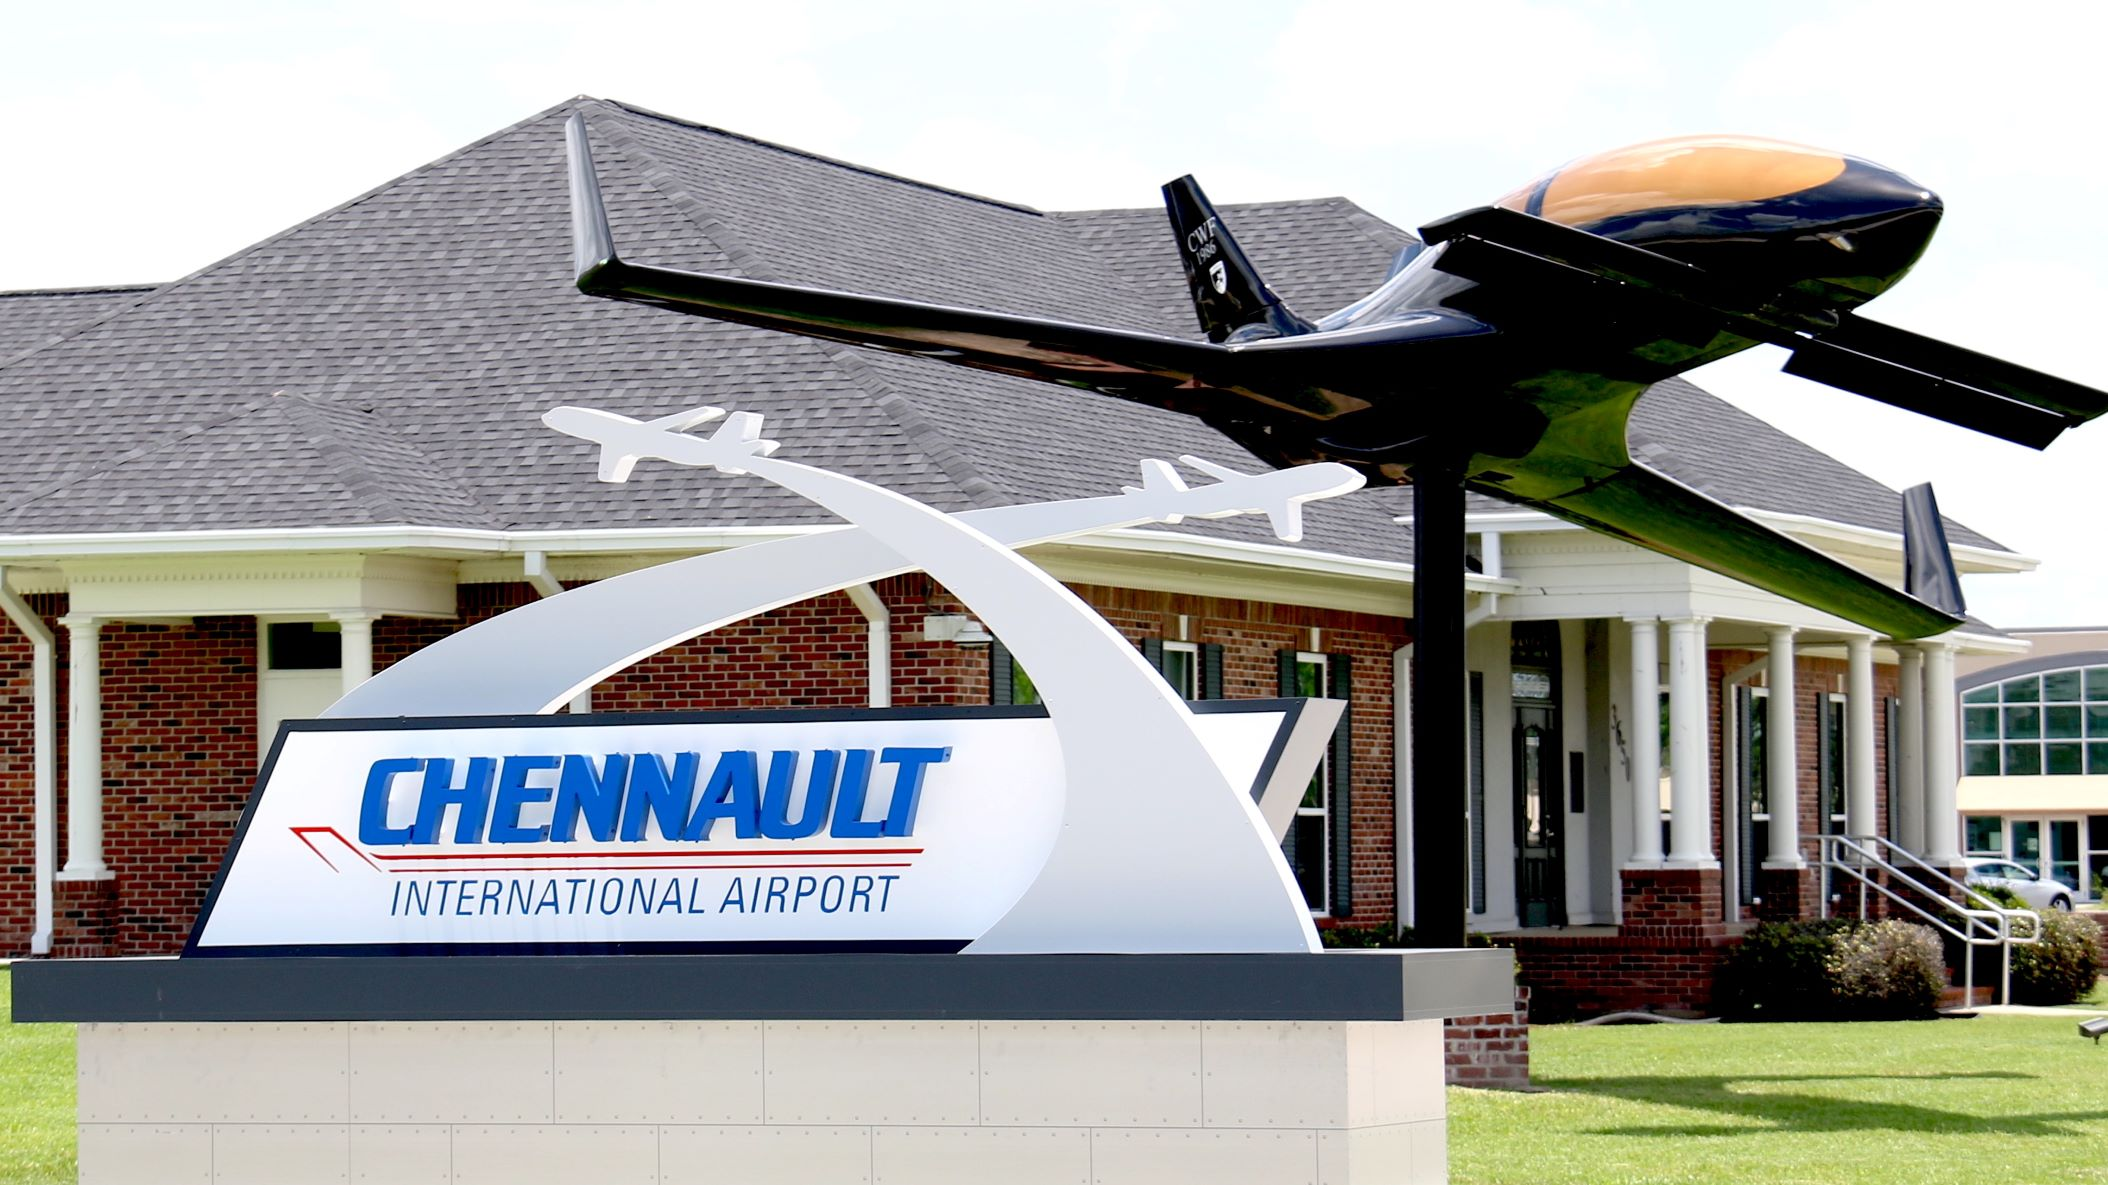 Entrance to Chennault International Airport, with sign and statue of a plane in front of small brick building.